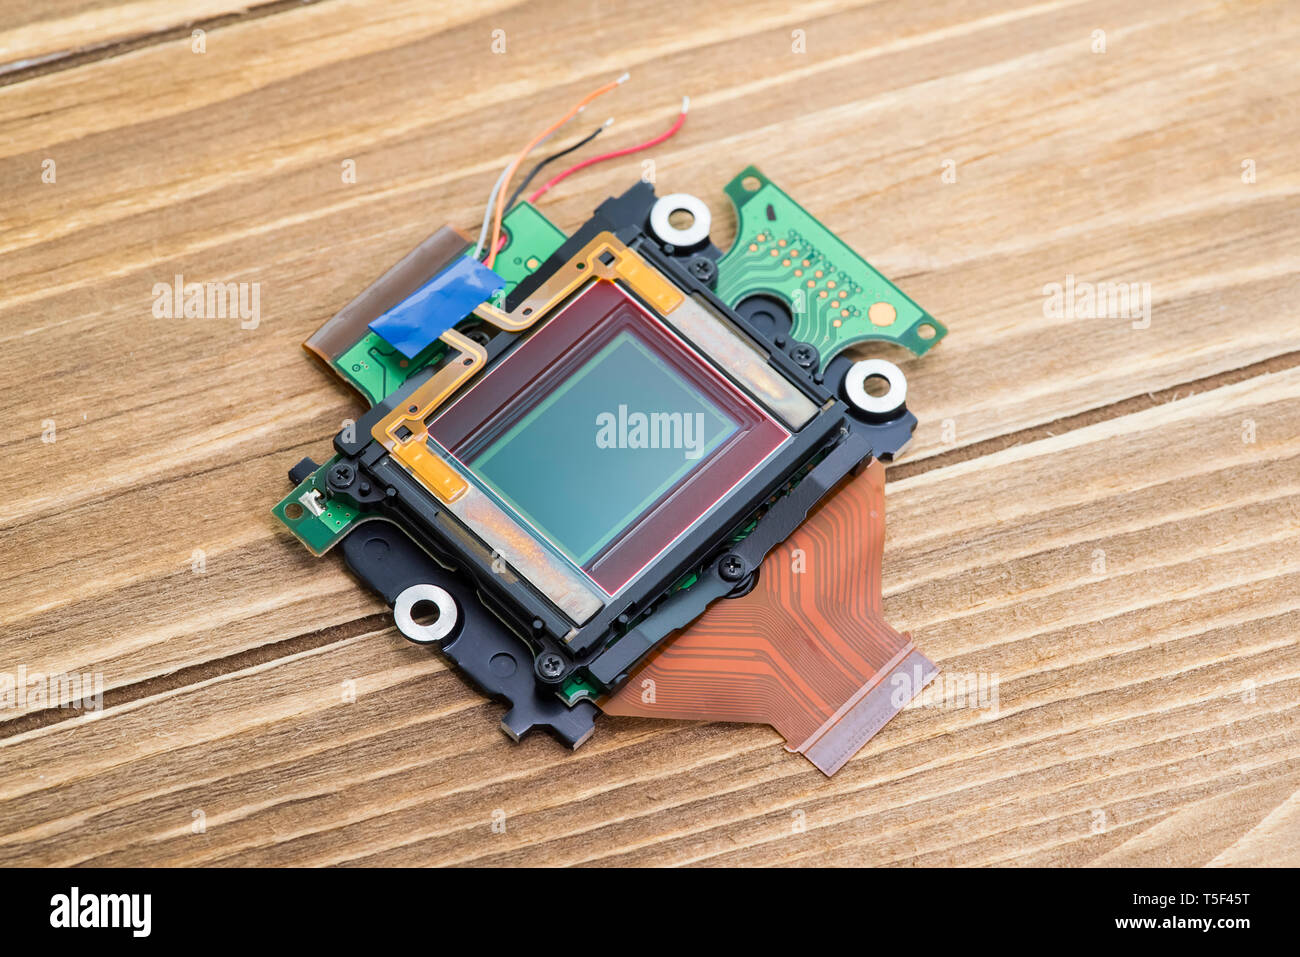 CCD sensors from the modern mass compact digital camera - Stock Image